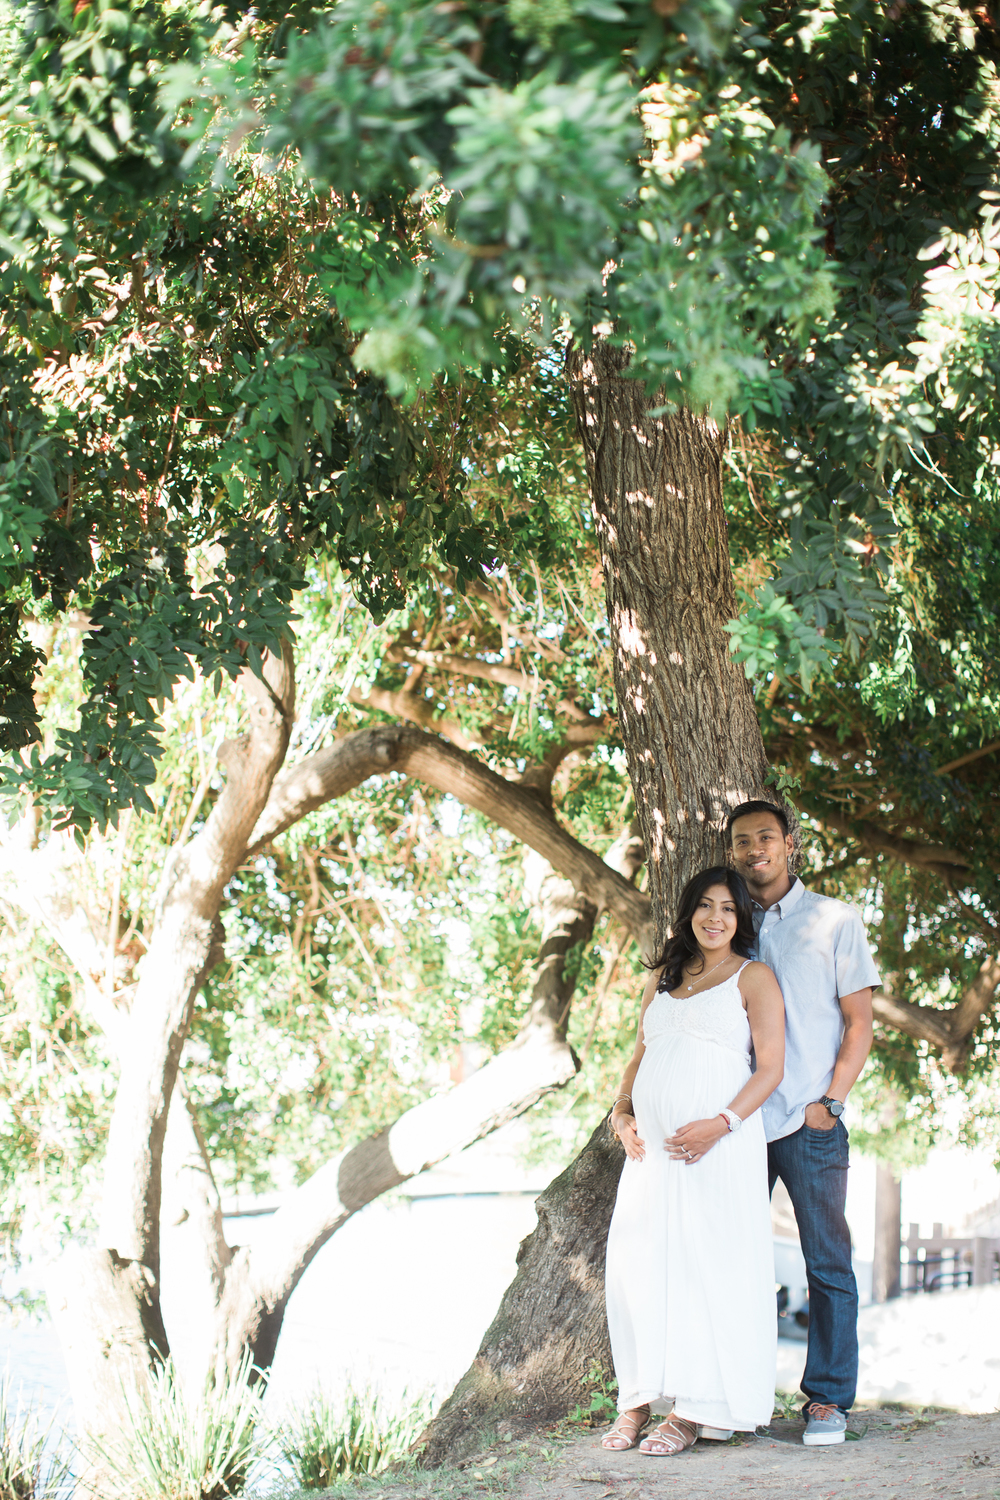 Marcella_Maternity_Cerritos_BrandonJFerlin_Photography-13.jpg